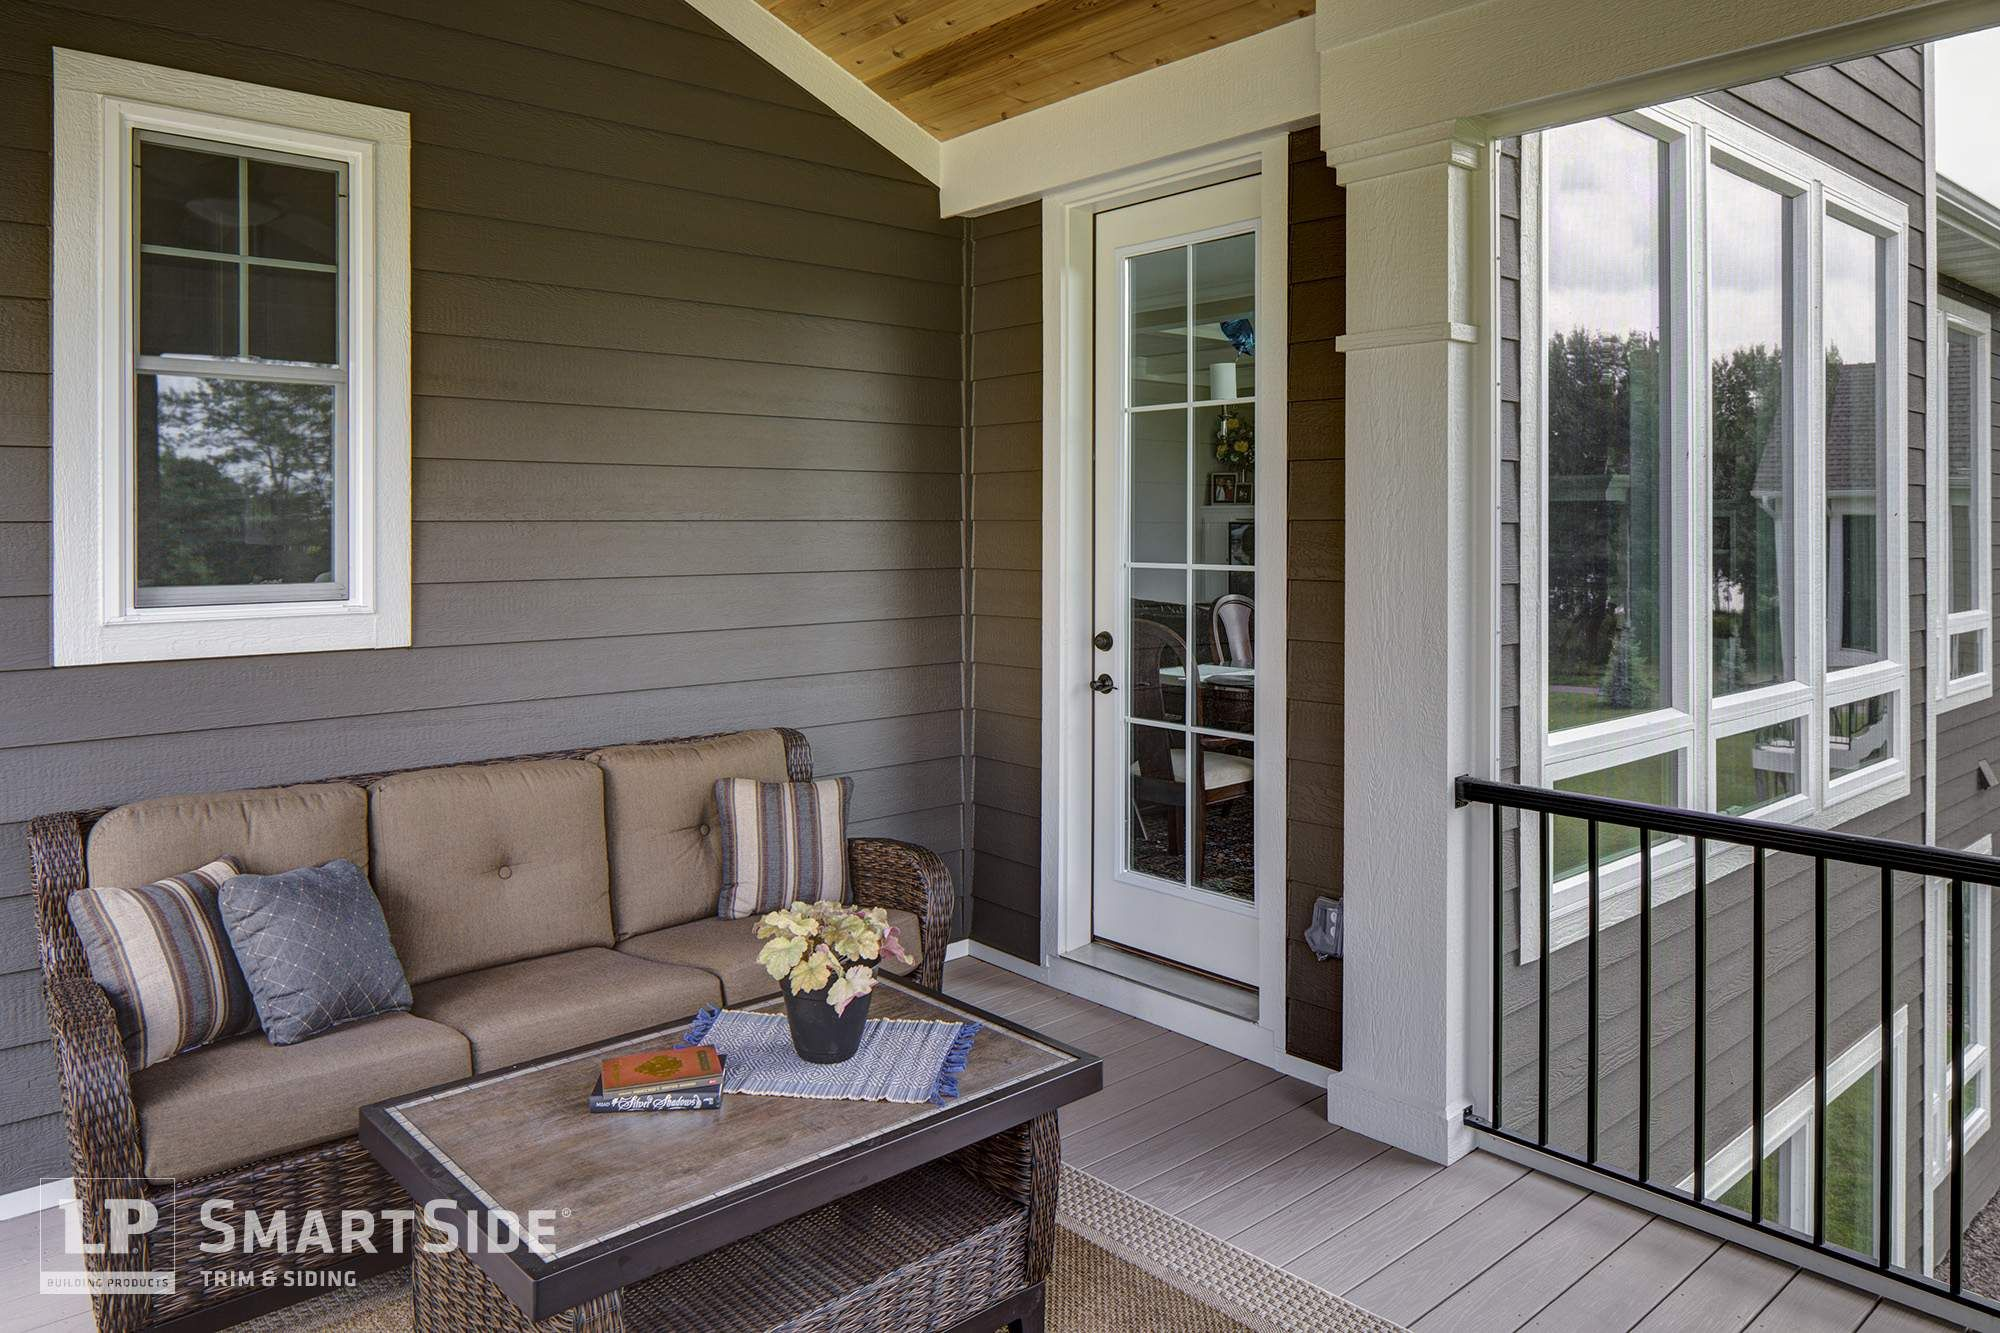 Lp Smartside Lap Siding Inside A Screened In Porch Home